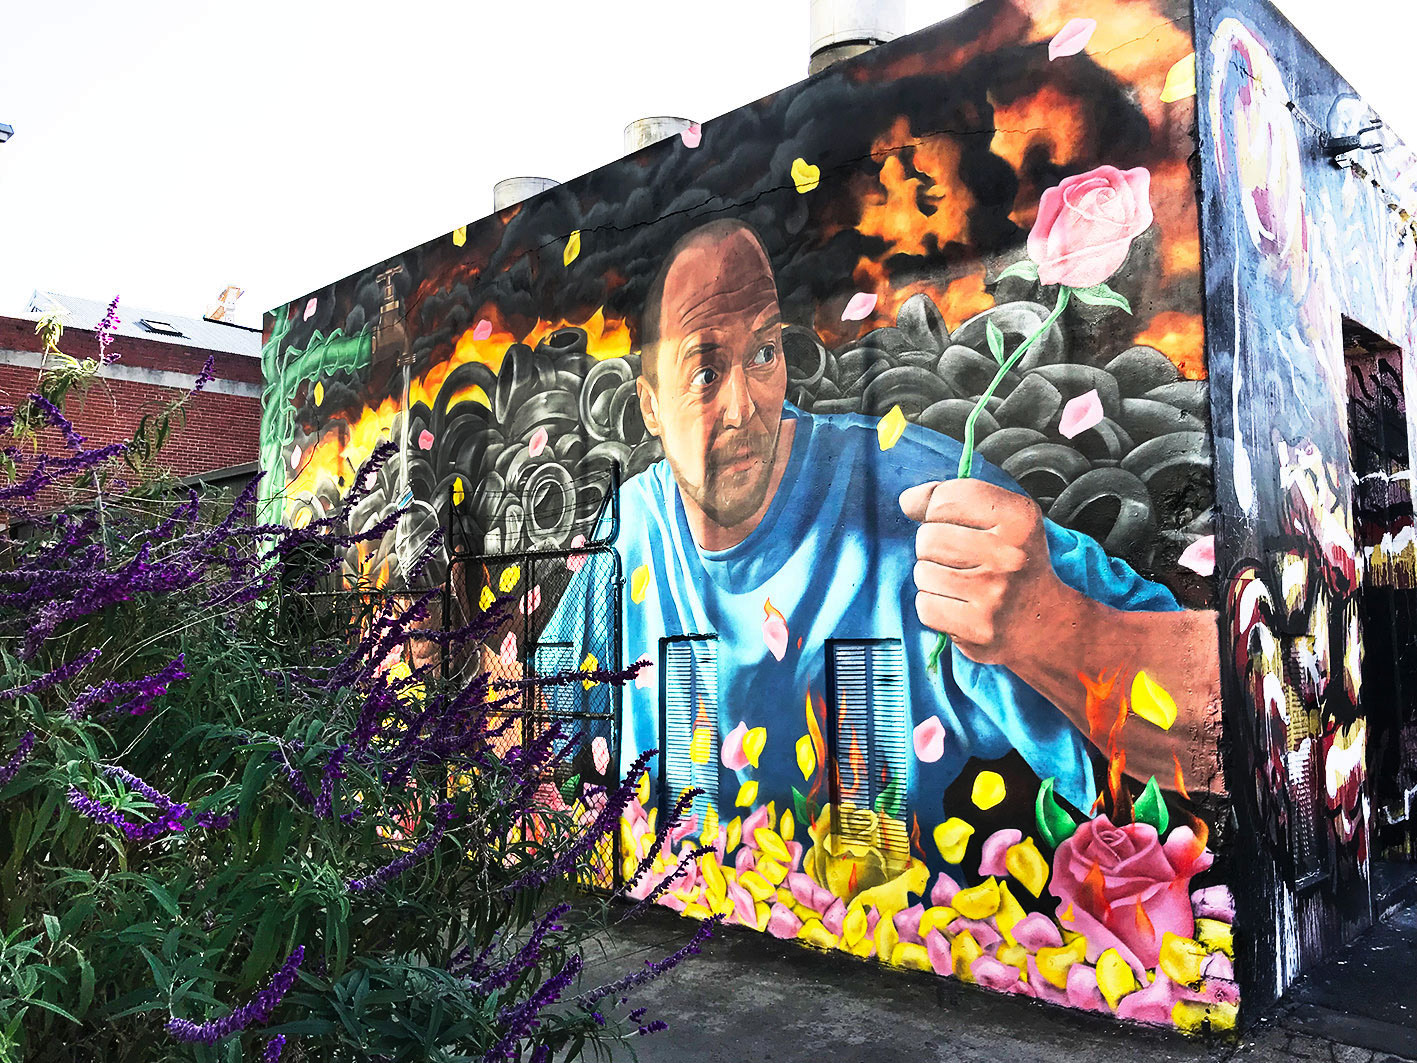 May 2018 - Budd St, Collingwood, Melbourne